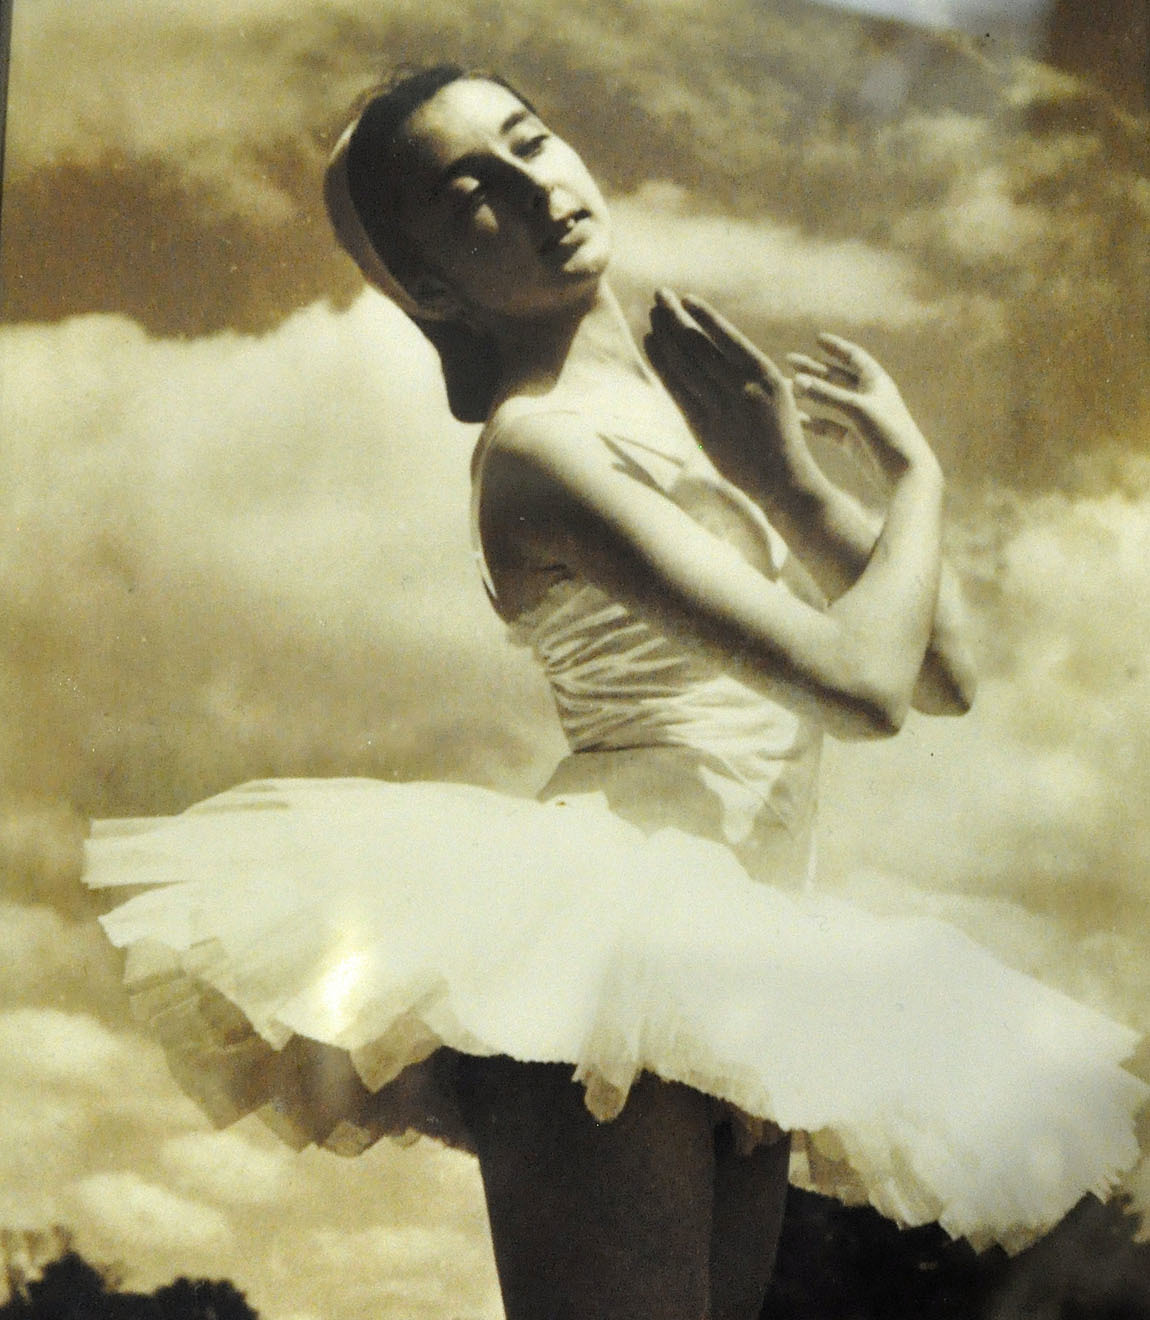 Care home resident trained at Ballet Rambert, now the Rambert Dance Company